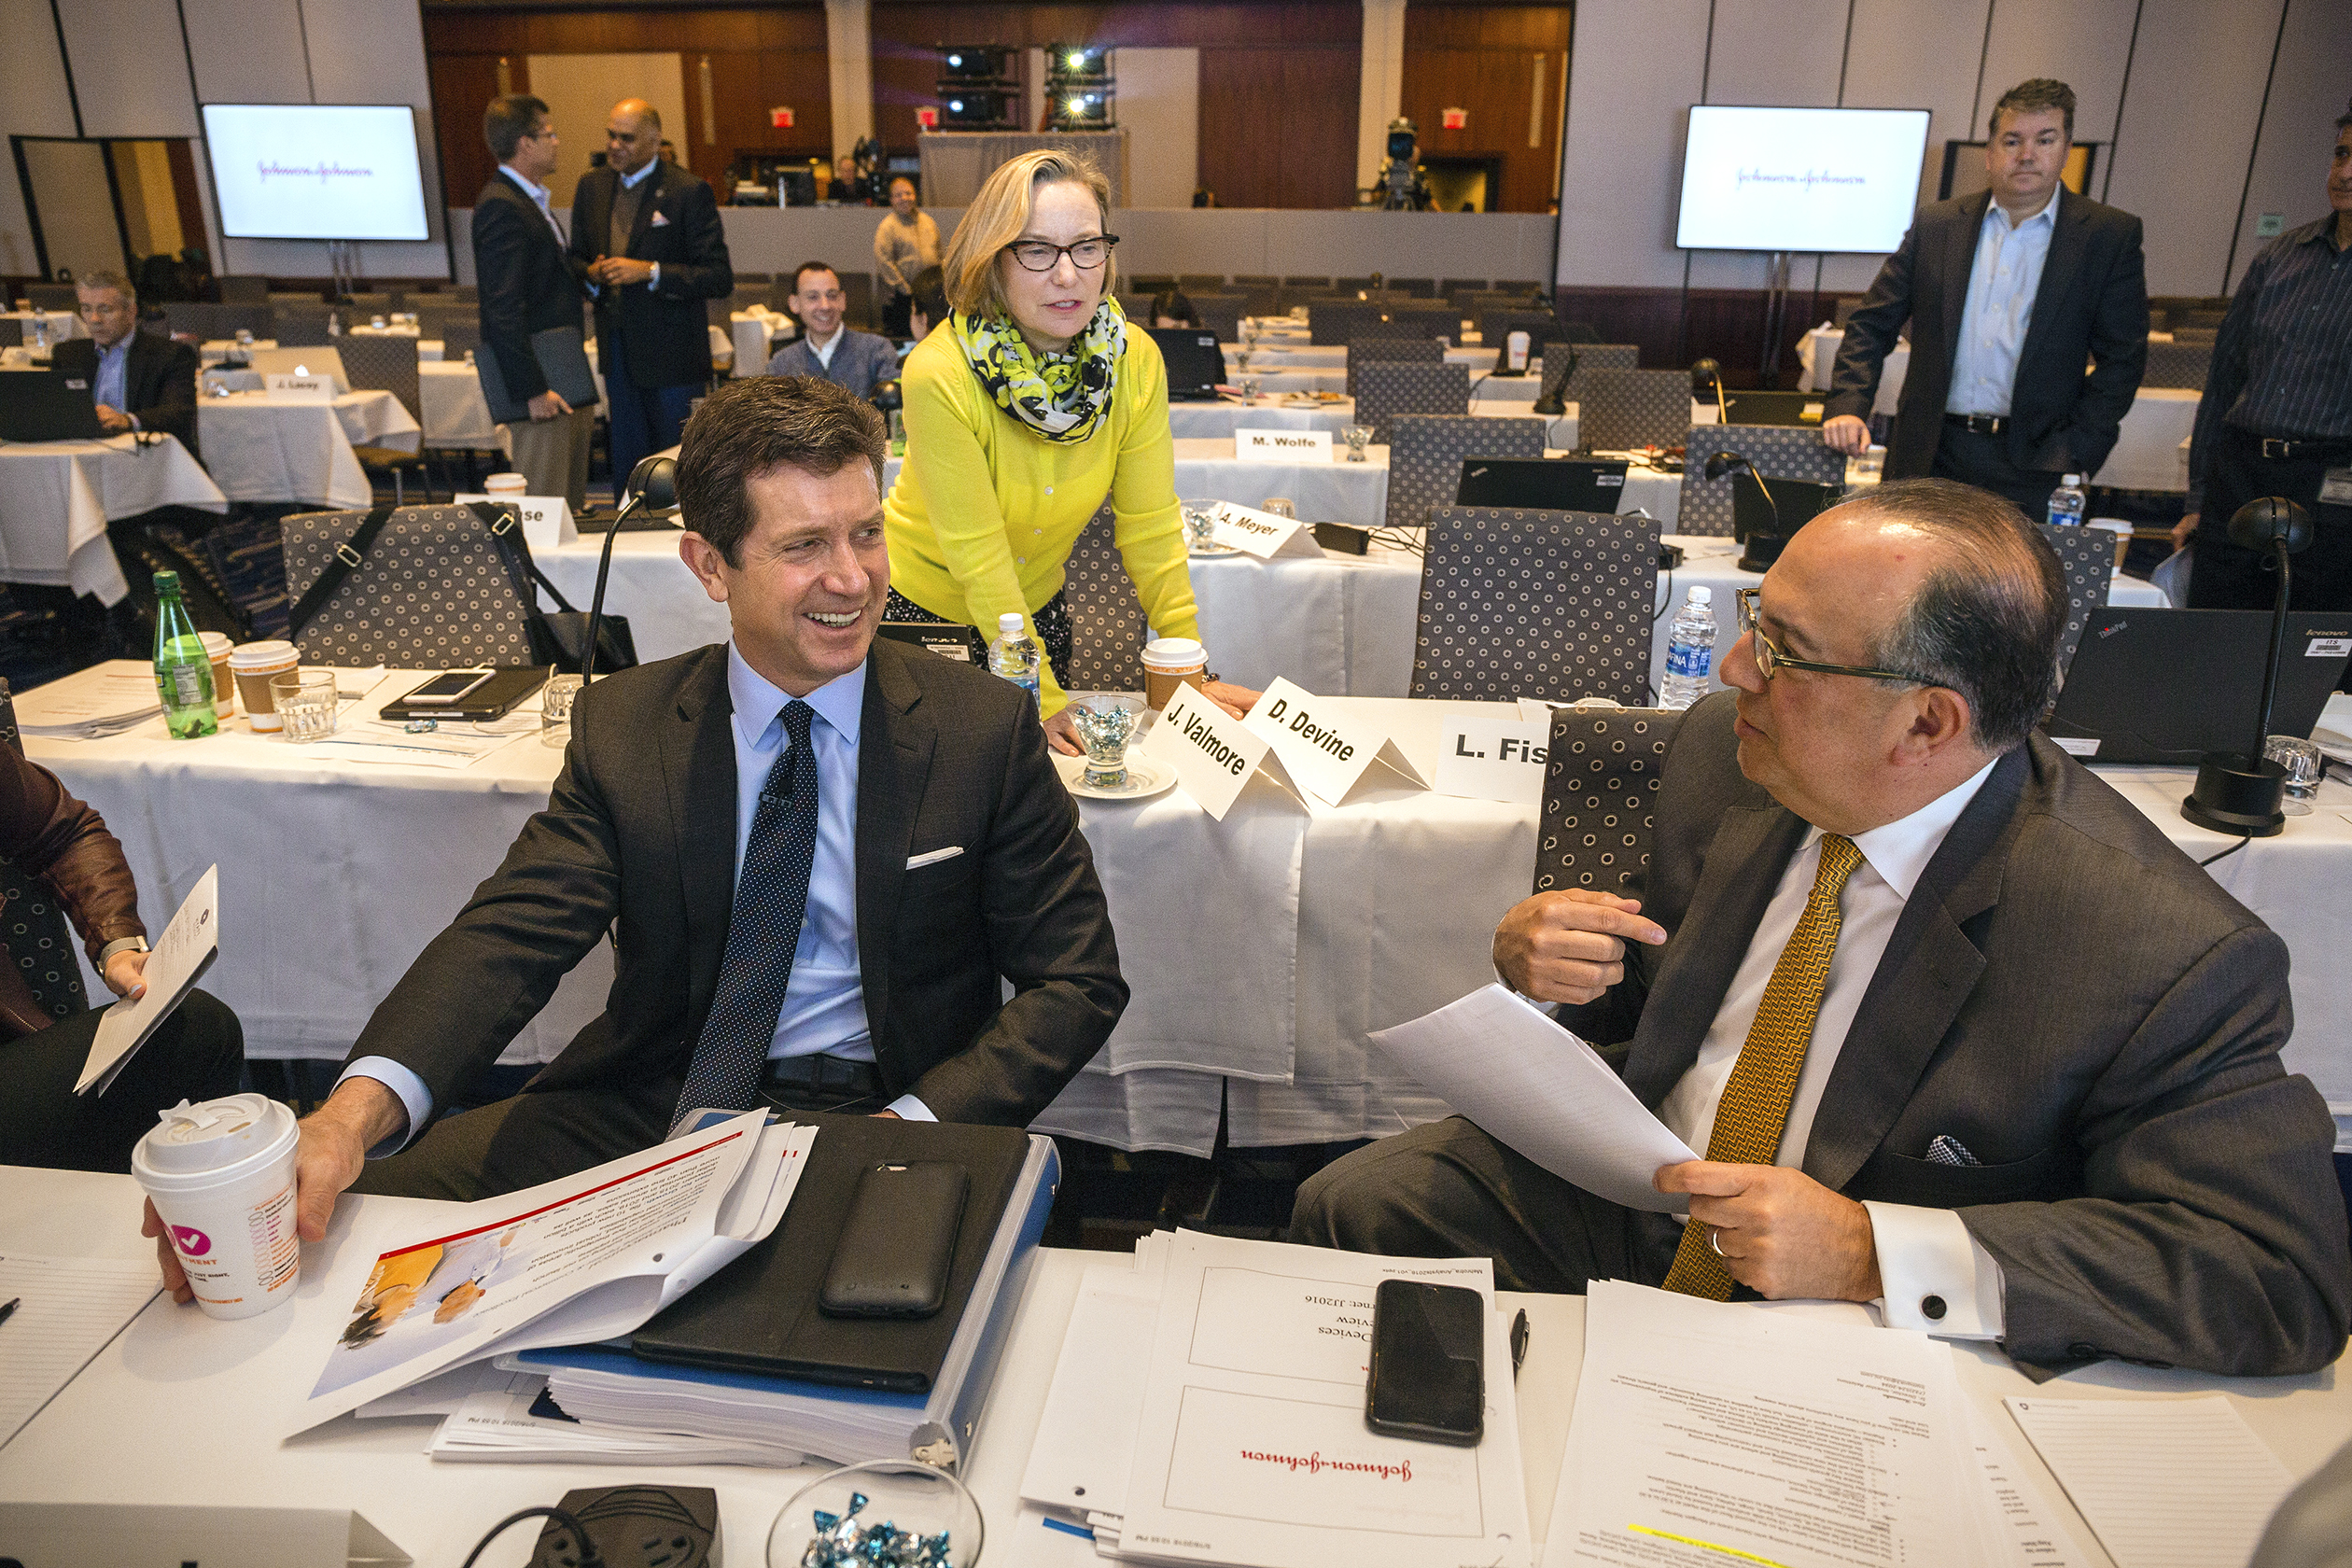 The day before senior leaders from the Johnson & Johnson are to present to the investment community, strategies for growth in the Consumer and Medical Device segments, Chairman and CEO Alex Gorsky practiced his presentation in front of his senior staff and advisors, in the main ballroom of the Hyatt Hotel in New Brunswick, NJ, Tuesday 17 May 2016.In many photos, wearing a yellow jacket is Sandra (Sandi) E. Peterson, Executive Vice President, Group Worldwide Chairman for Johnson and Johnson and Dominic Caruso, Chief Financial Officer.Credit: Timothy Fadek / Redux Pictures